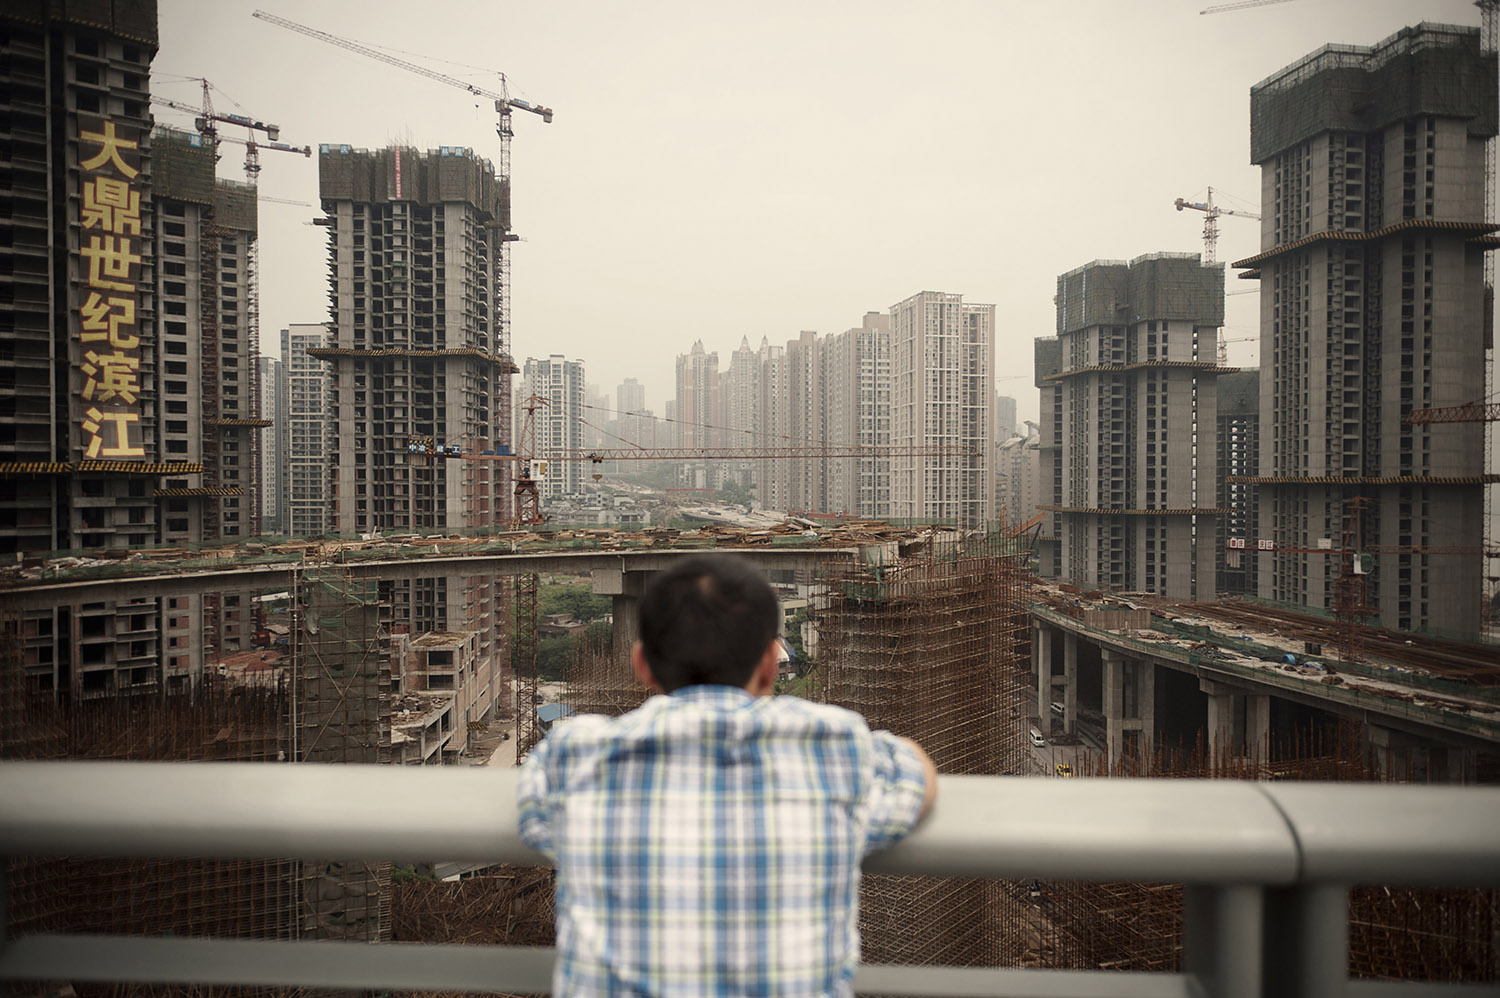 "A man staring at a large residential complex under construction by the Yangtze in Chongqing. Part of the ""Chongqing Model"" developed by Party Secretary Bo Xilai includes the construction of social housing. Chongqing has the fastest growing GDP in China. R esidential housing investment as a share of China's GDP has tripled from 2% in 2000 to 6% in 2011."